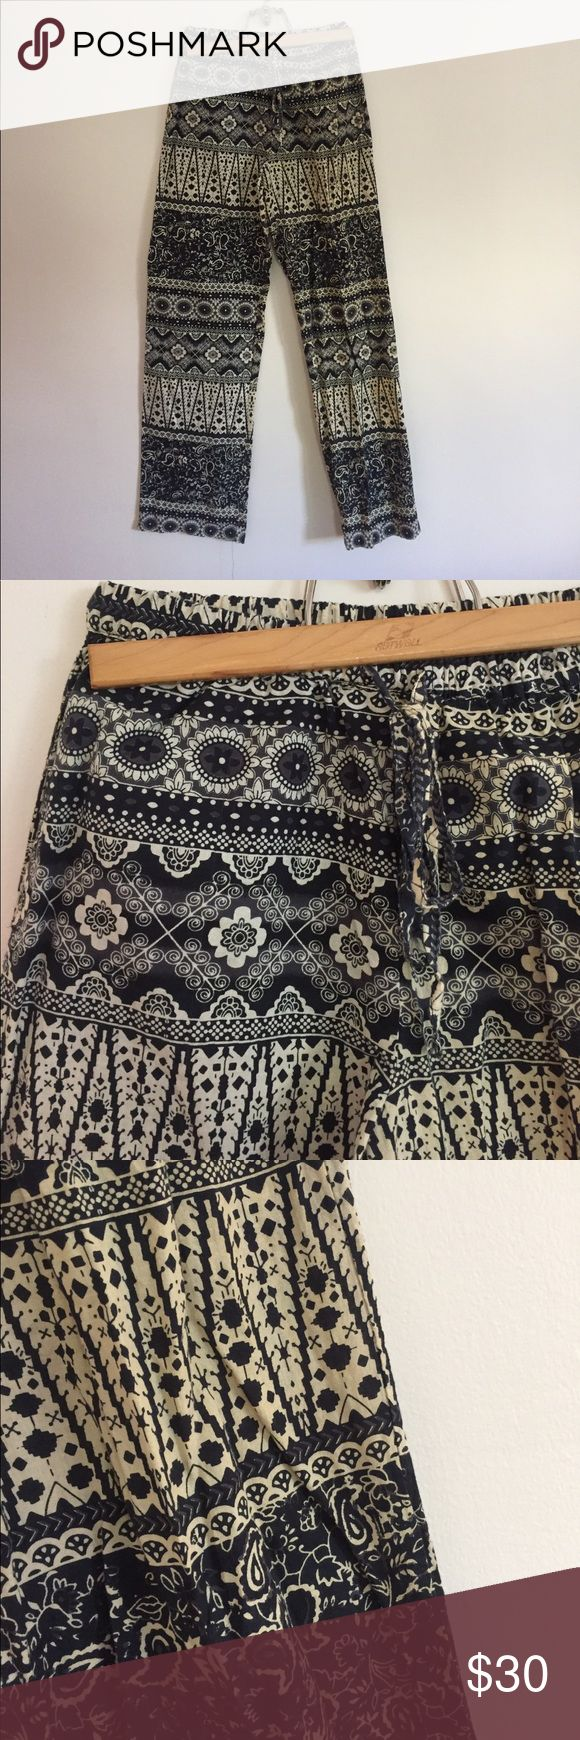 Urban Outfitters Soft Pants Soft, cozy & cute soft pants from Urban Outfitters. Brand is Staring at Stars. Elasticized waist with drawstring. Front pockets. Taupe & black pattern. 100% cotton. Size small. Worn once, like new. Urban Outfitters Pants Track Pants & Joggers